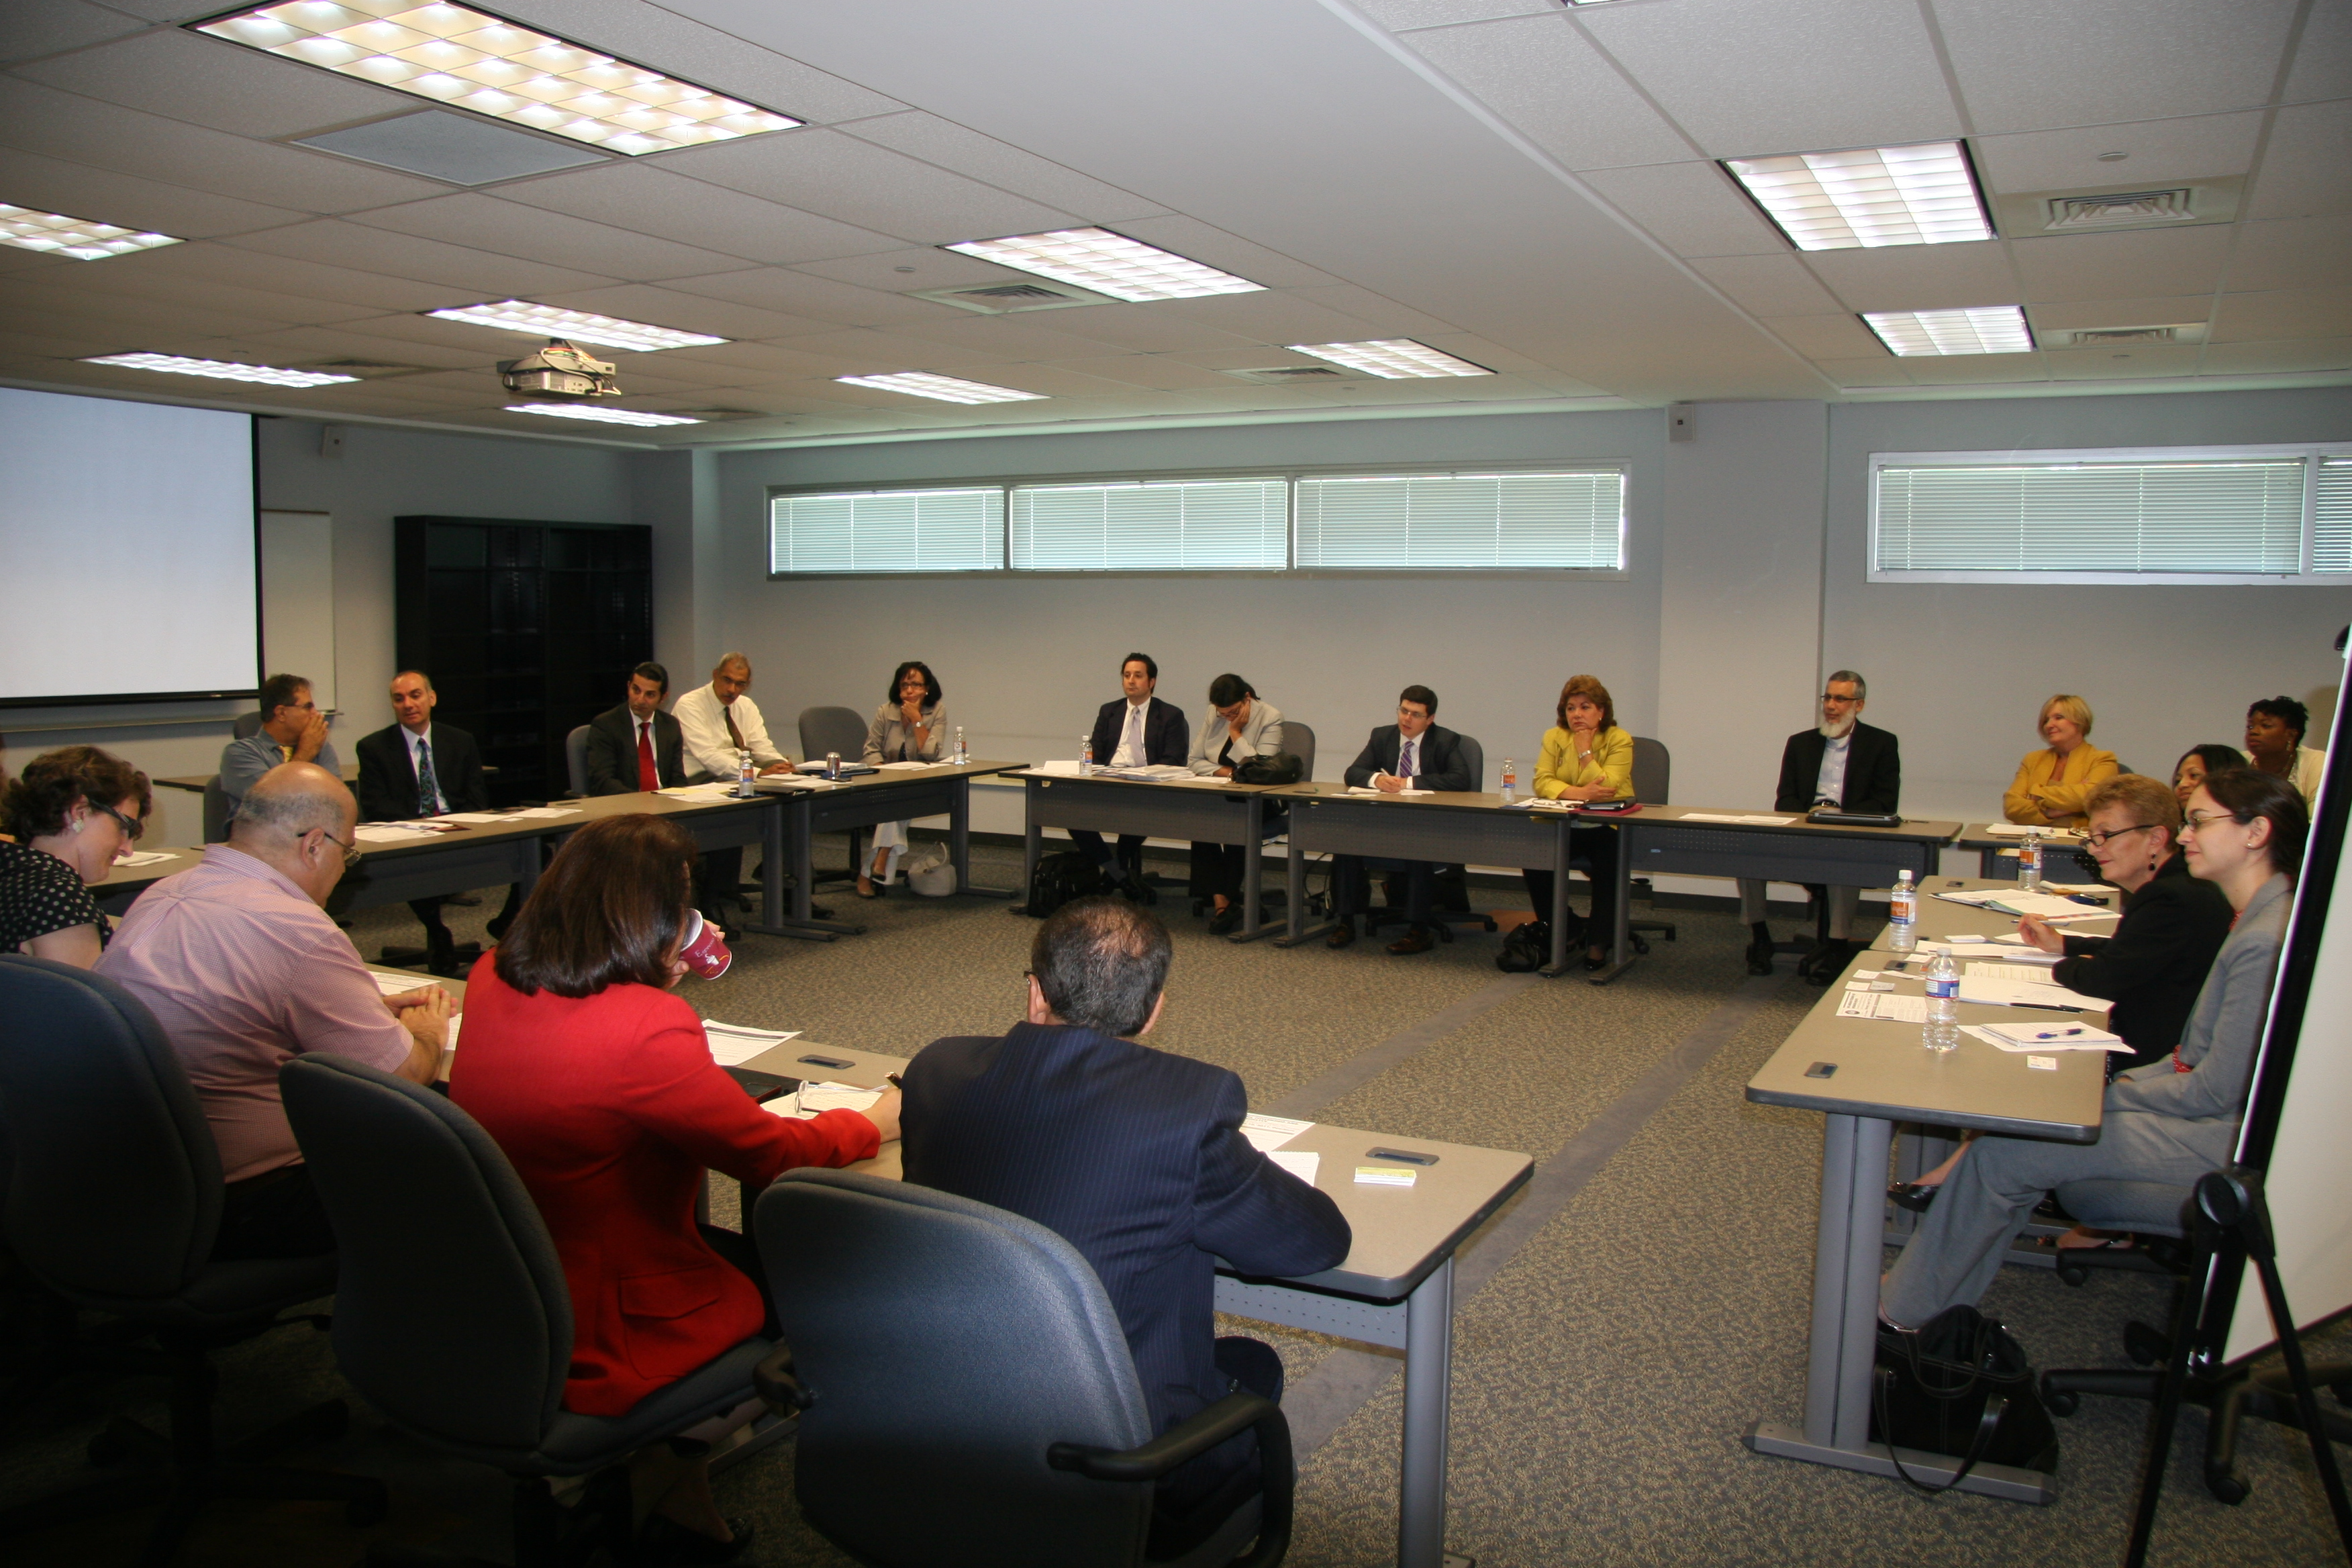 Immigrant Integration Roundtable in Dearborn, Michigan